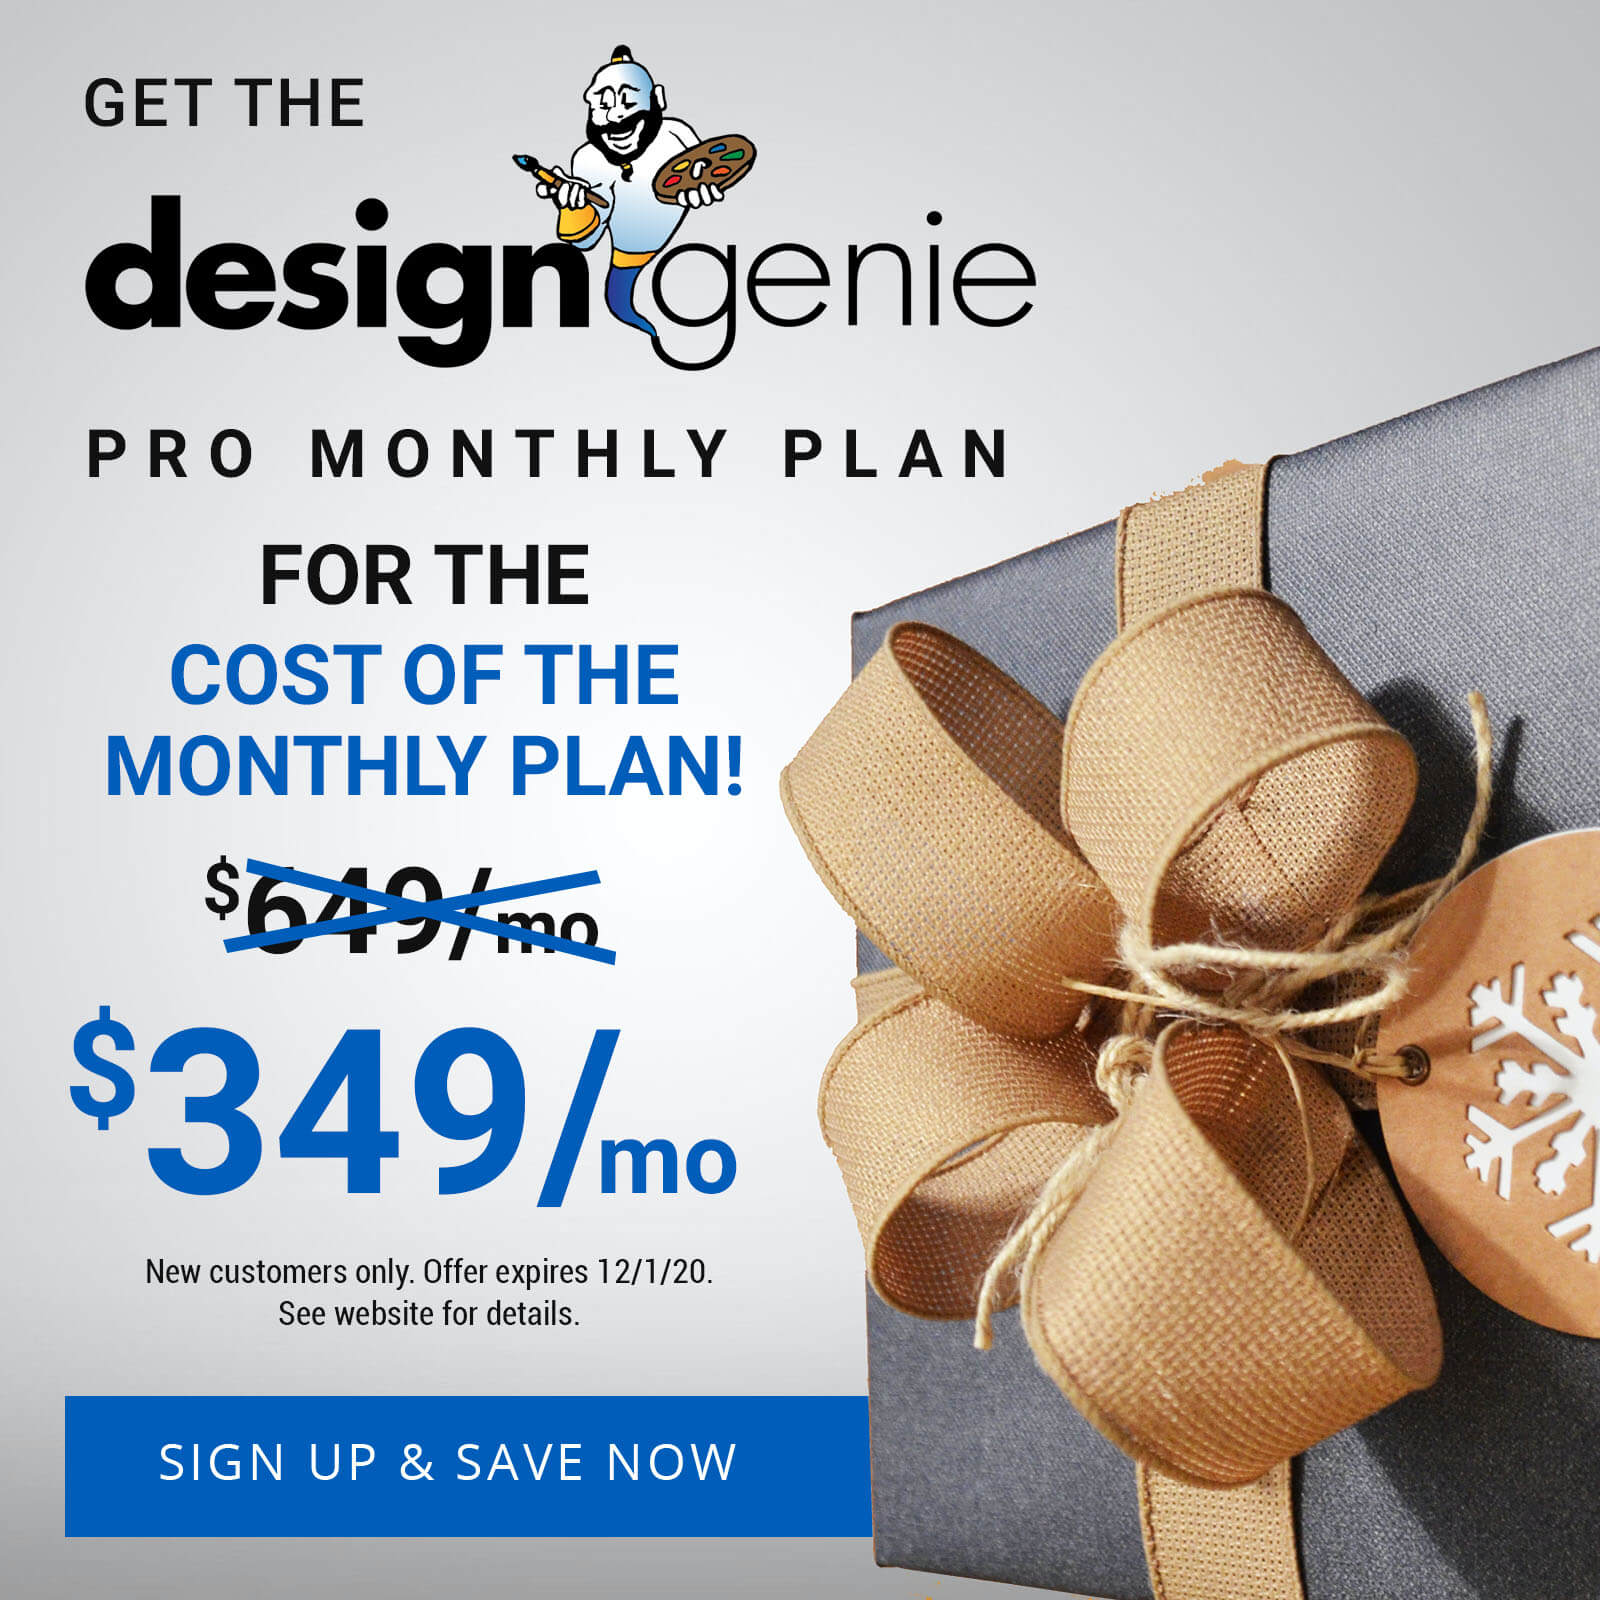 Design Genie Cyber Monday Deal